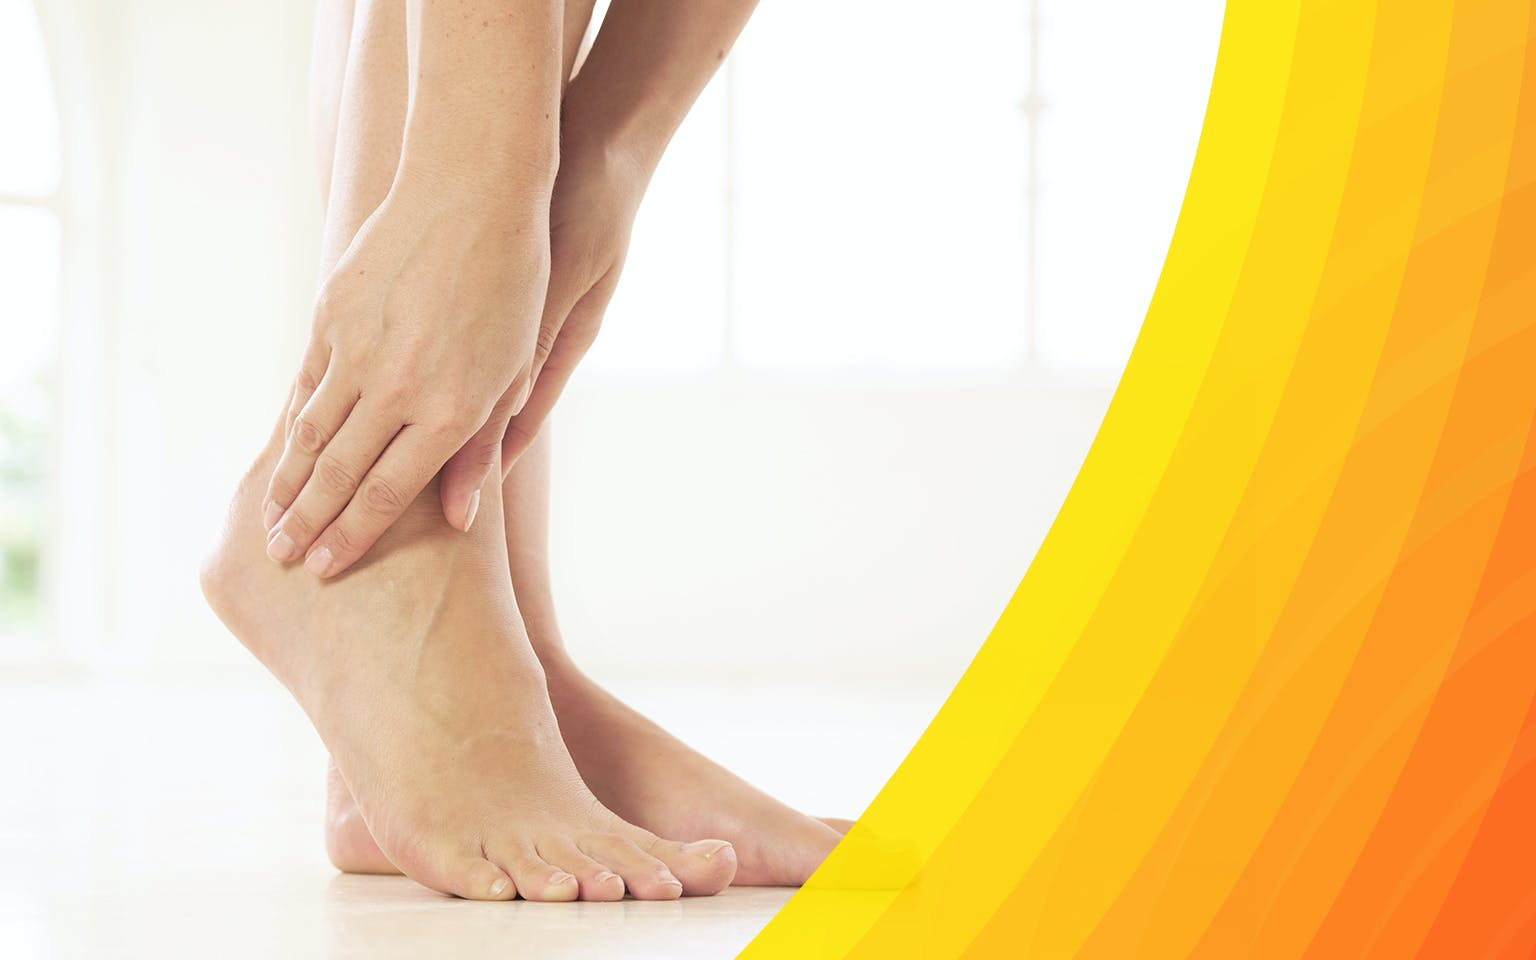 Woman's hand holding her foot because of ankle pain